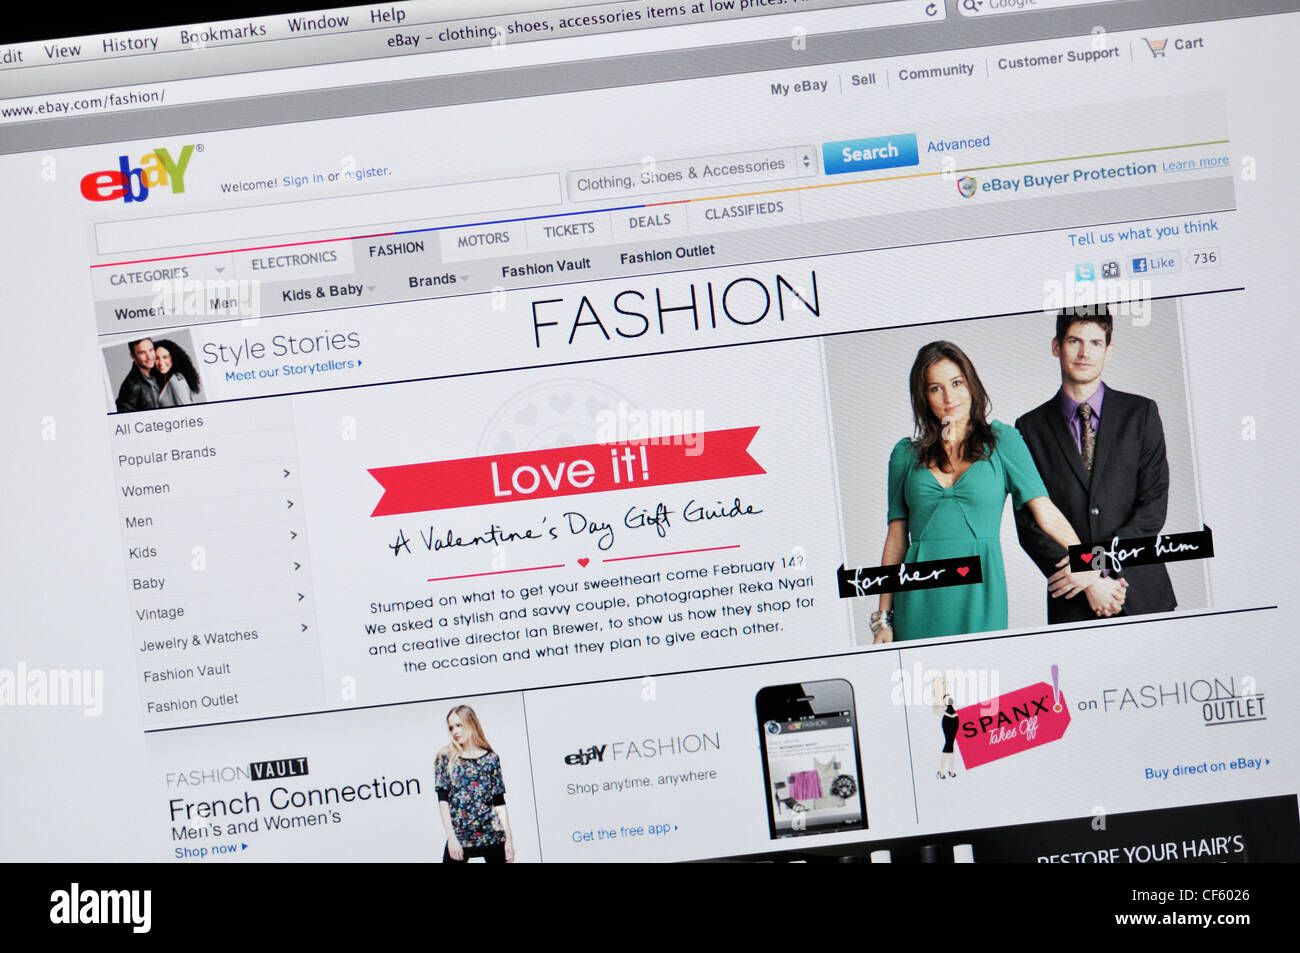 Ebay Online Auction Website Stock Photo Alamy